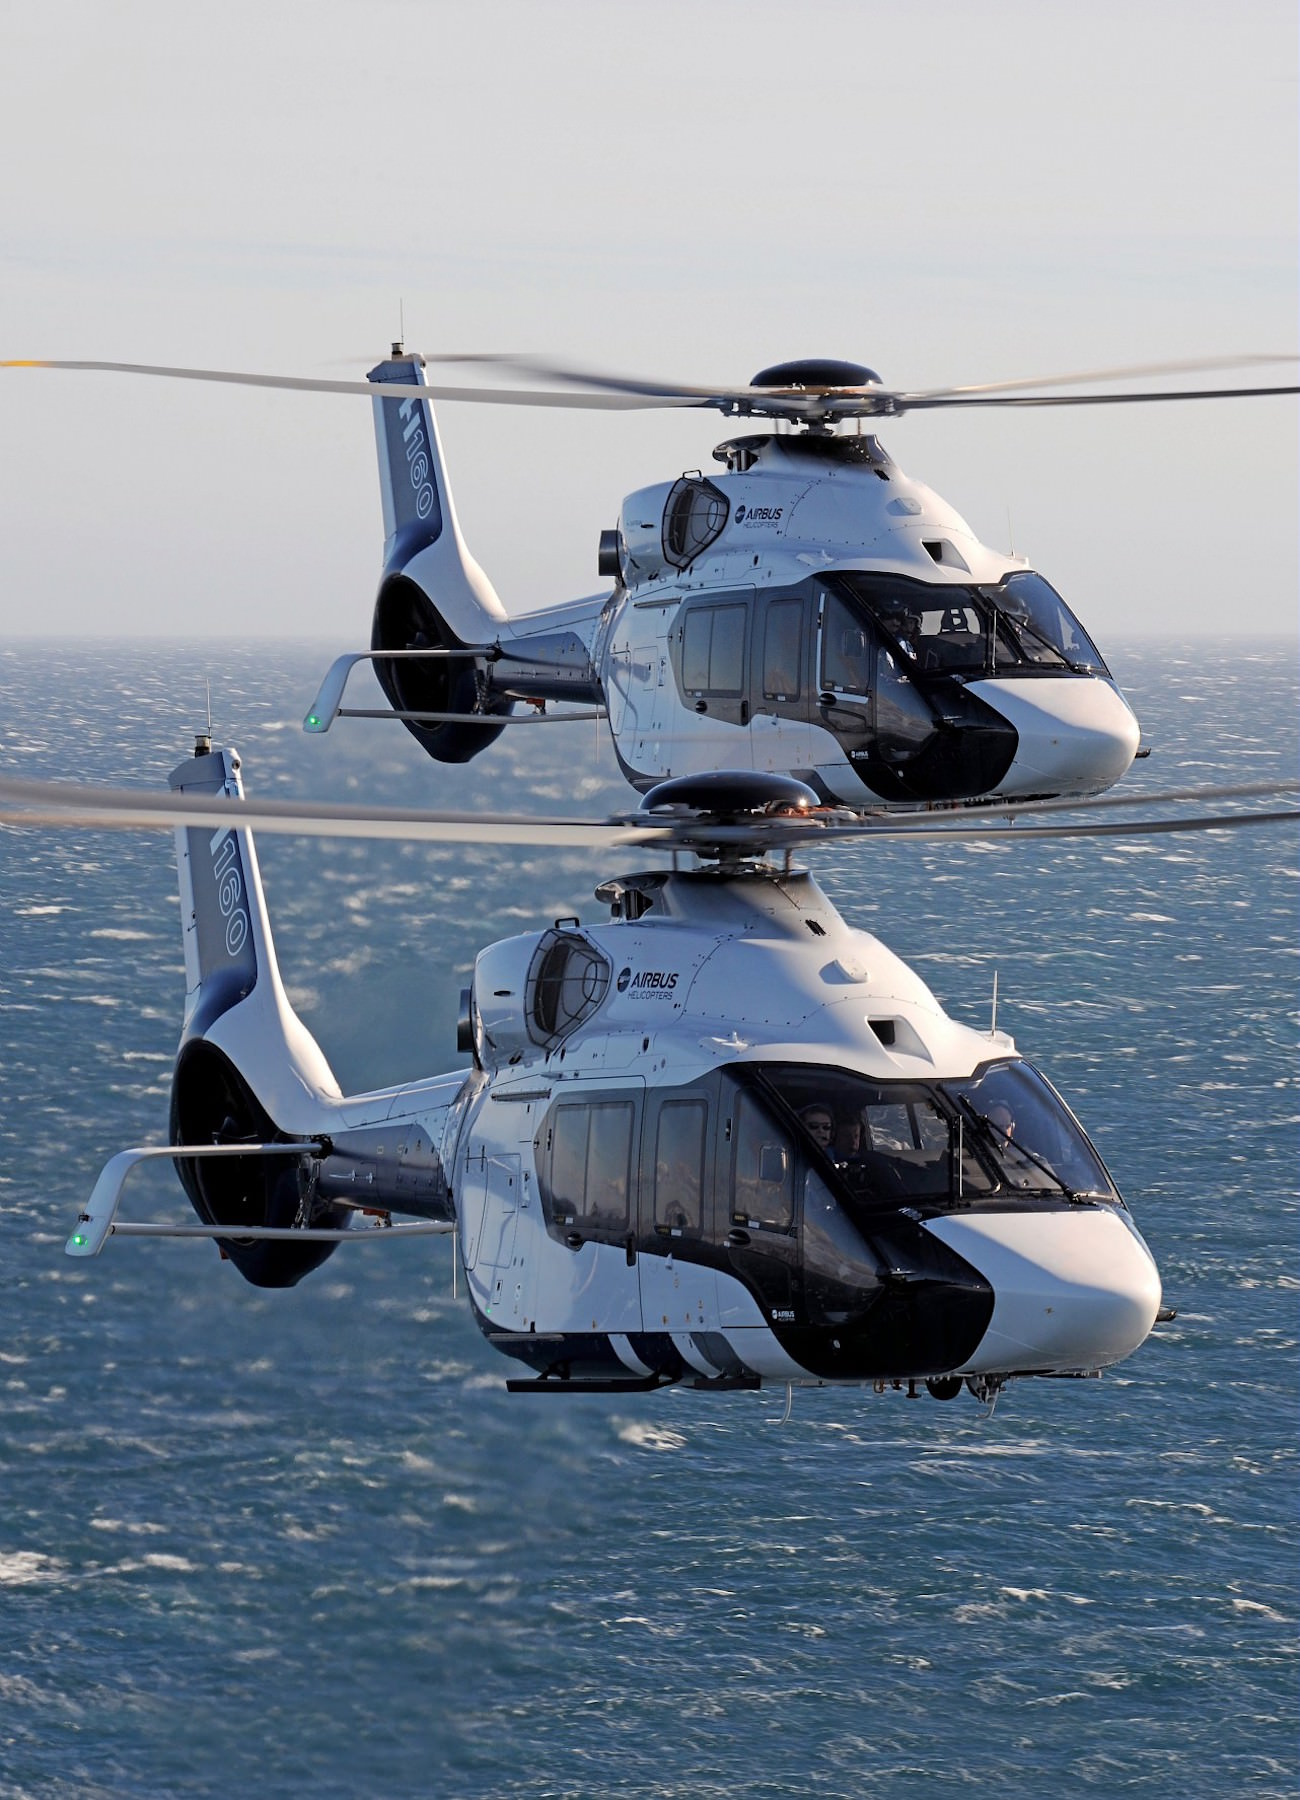 Airbus Helicopter H160 The Helicopters That Will Make You